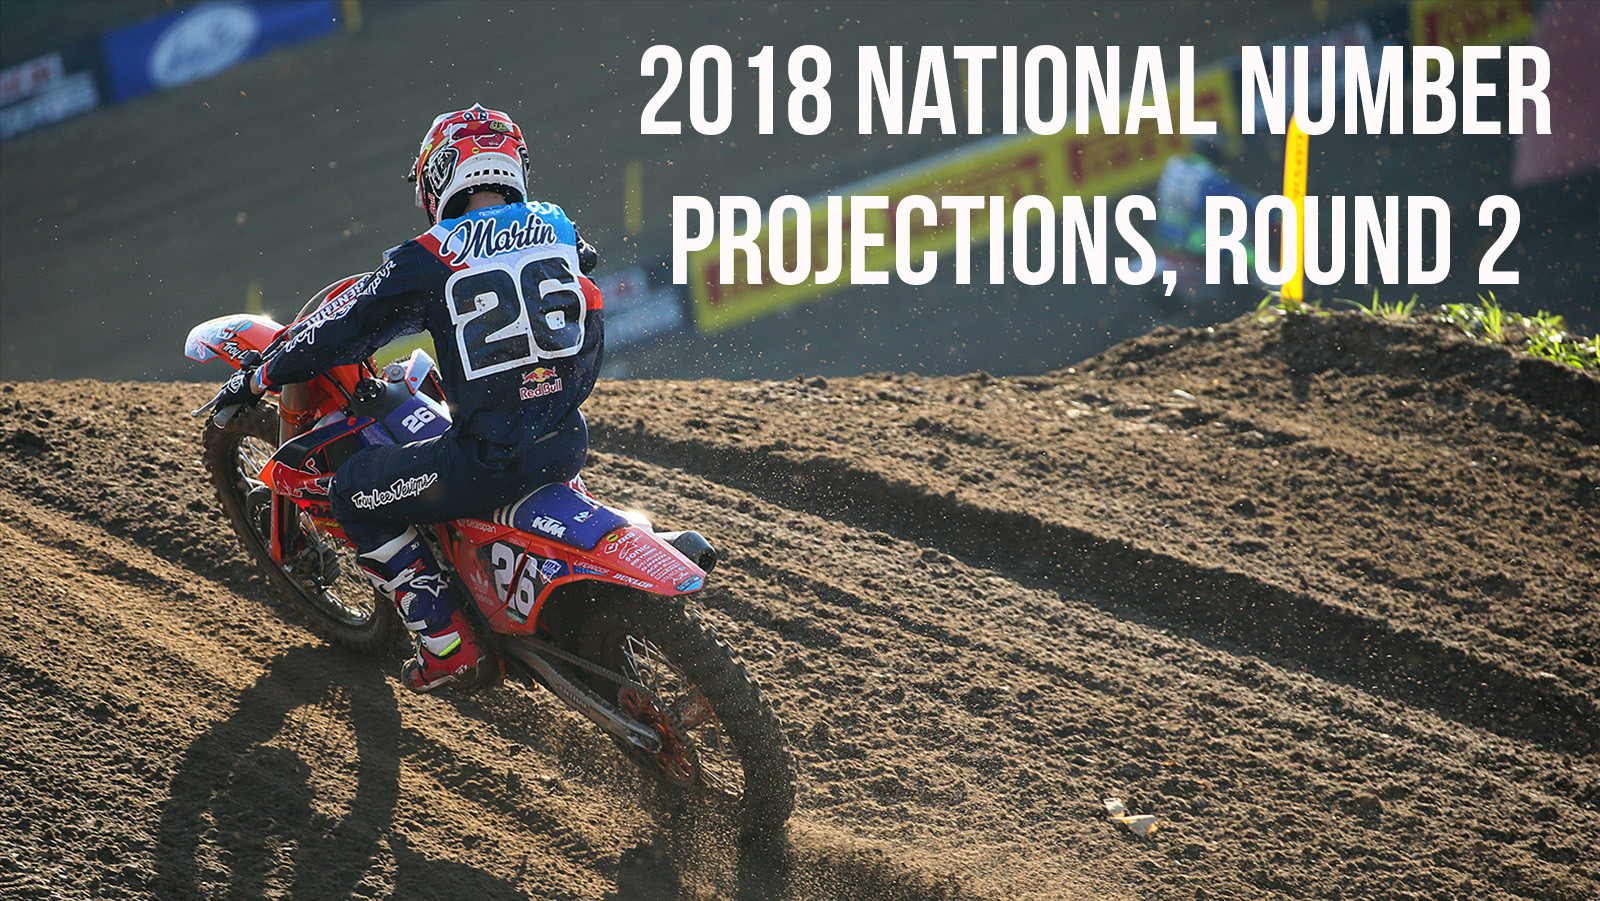 2018 ama national number projections round 2